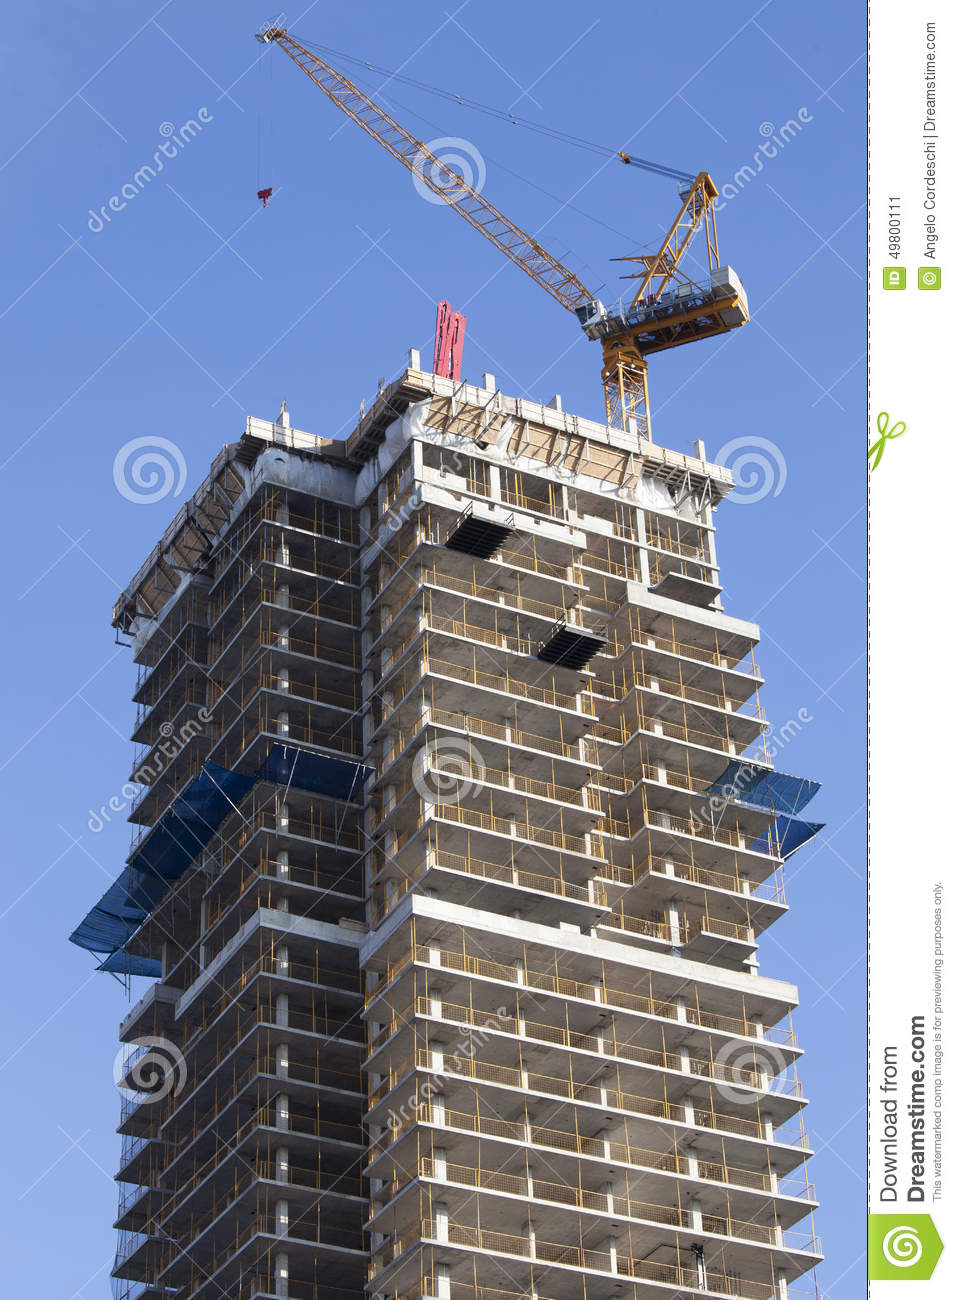 Grue et gratte ciel en construction toronto canada photo stock image 4980 - Construction gratte ciel ...